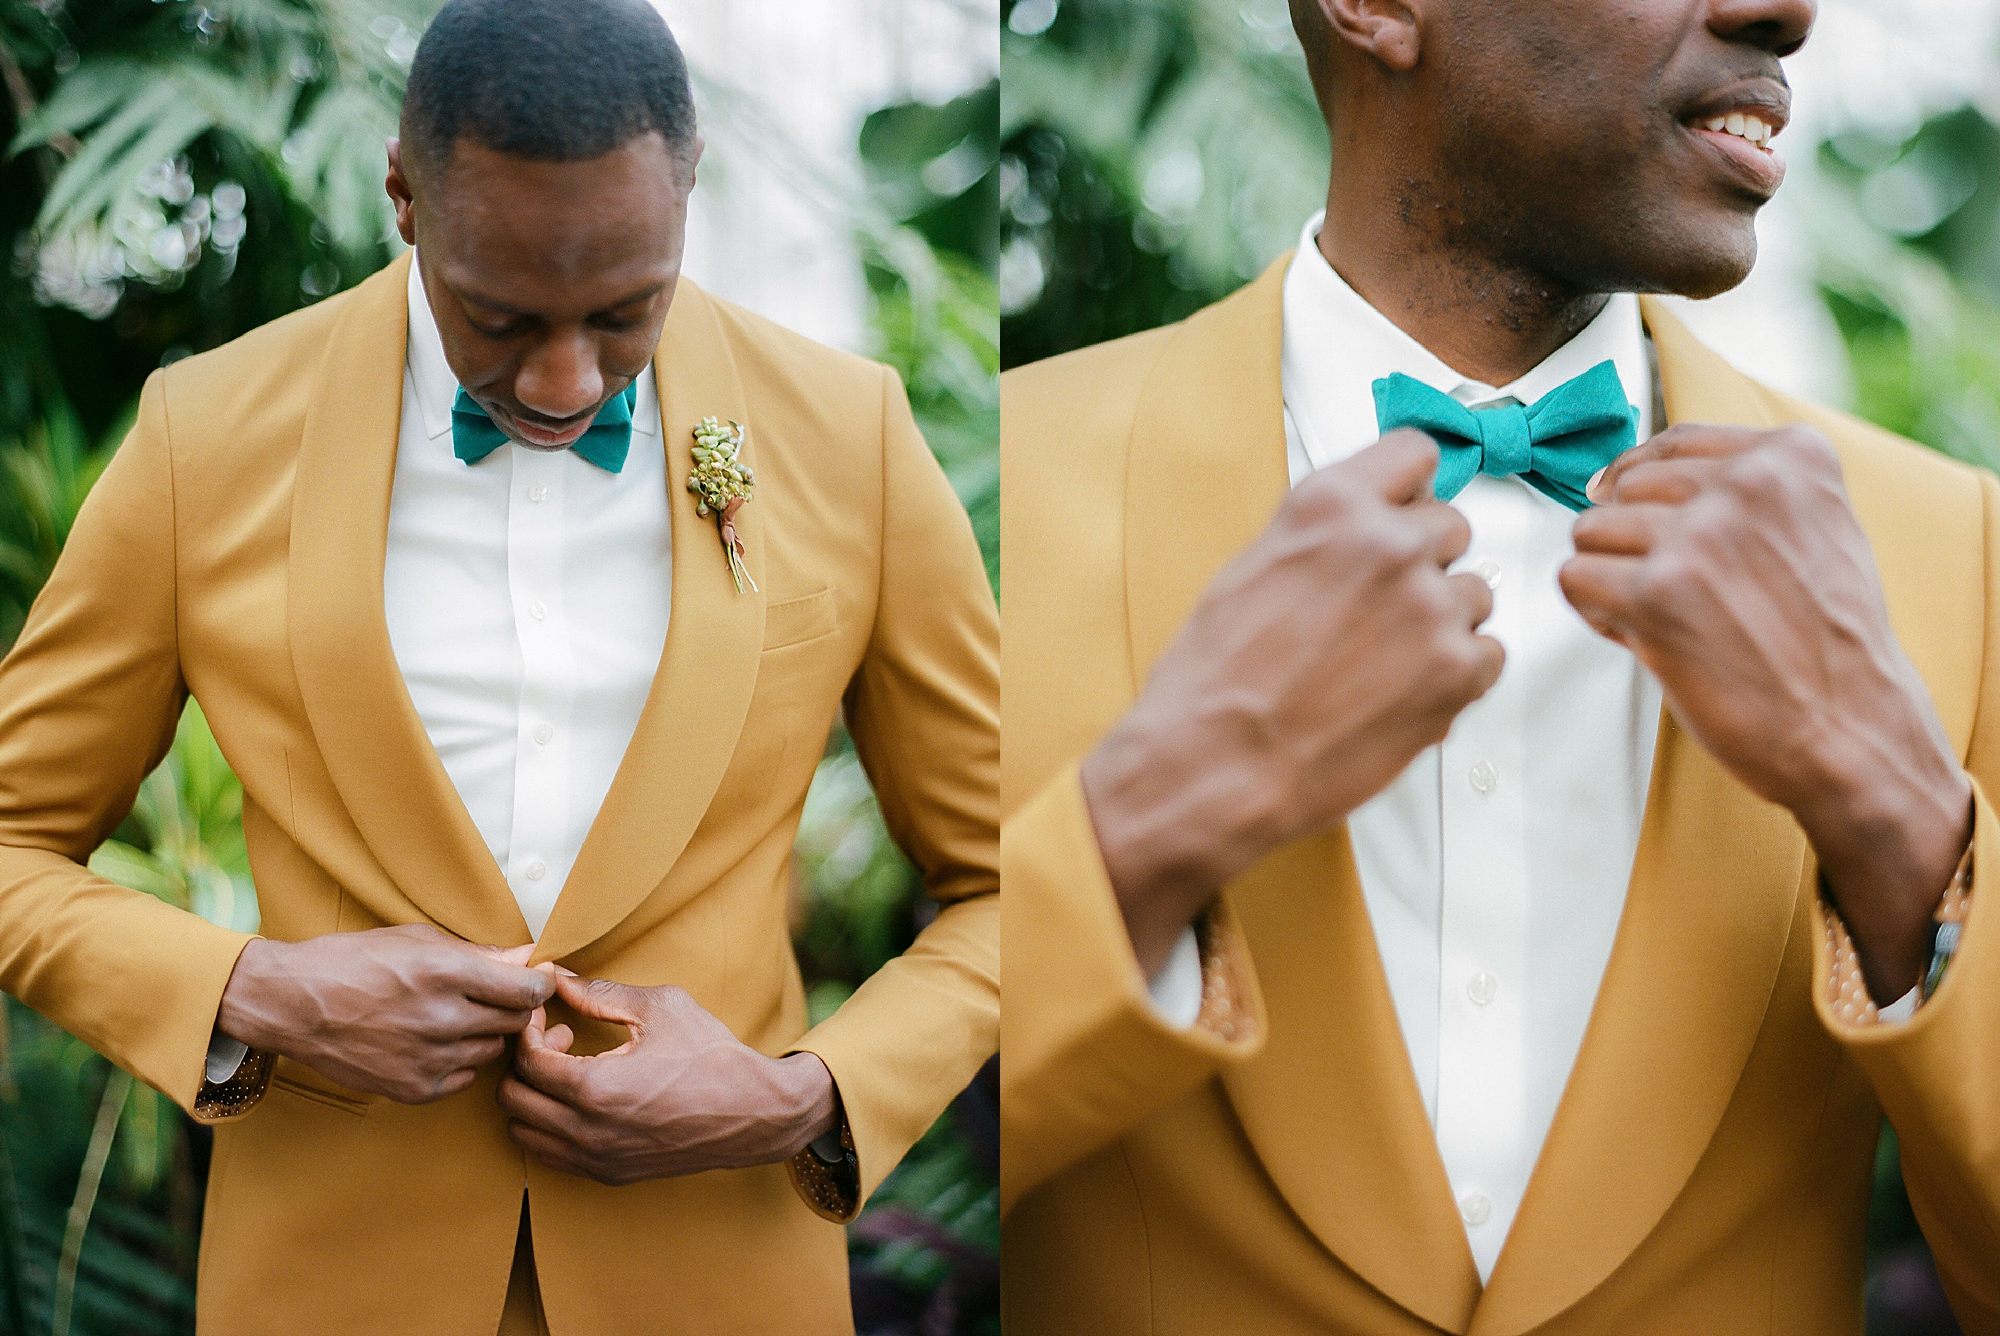 Colorful and Vibrant Wedding Photography at Fairmount Horticultural Center by Magdalena Studios 0051